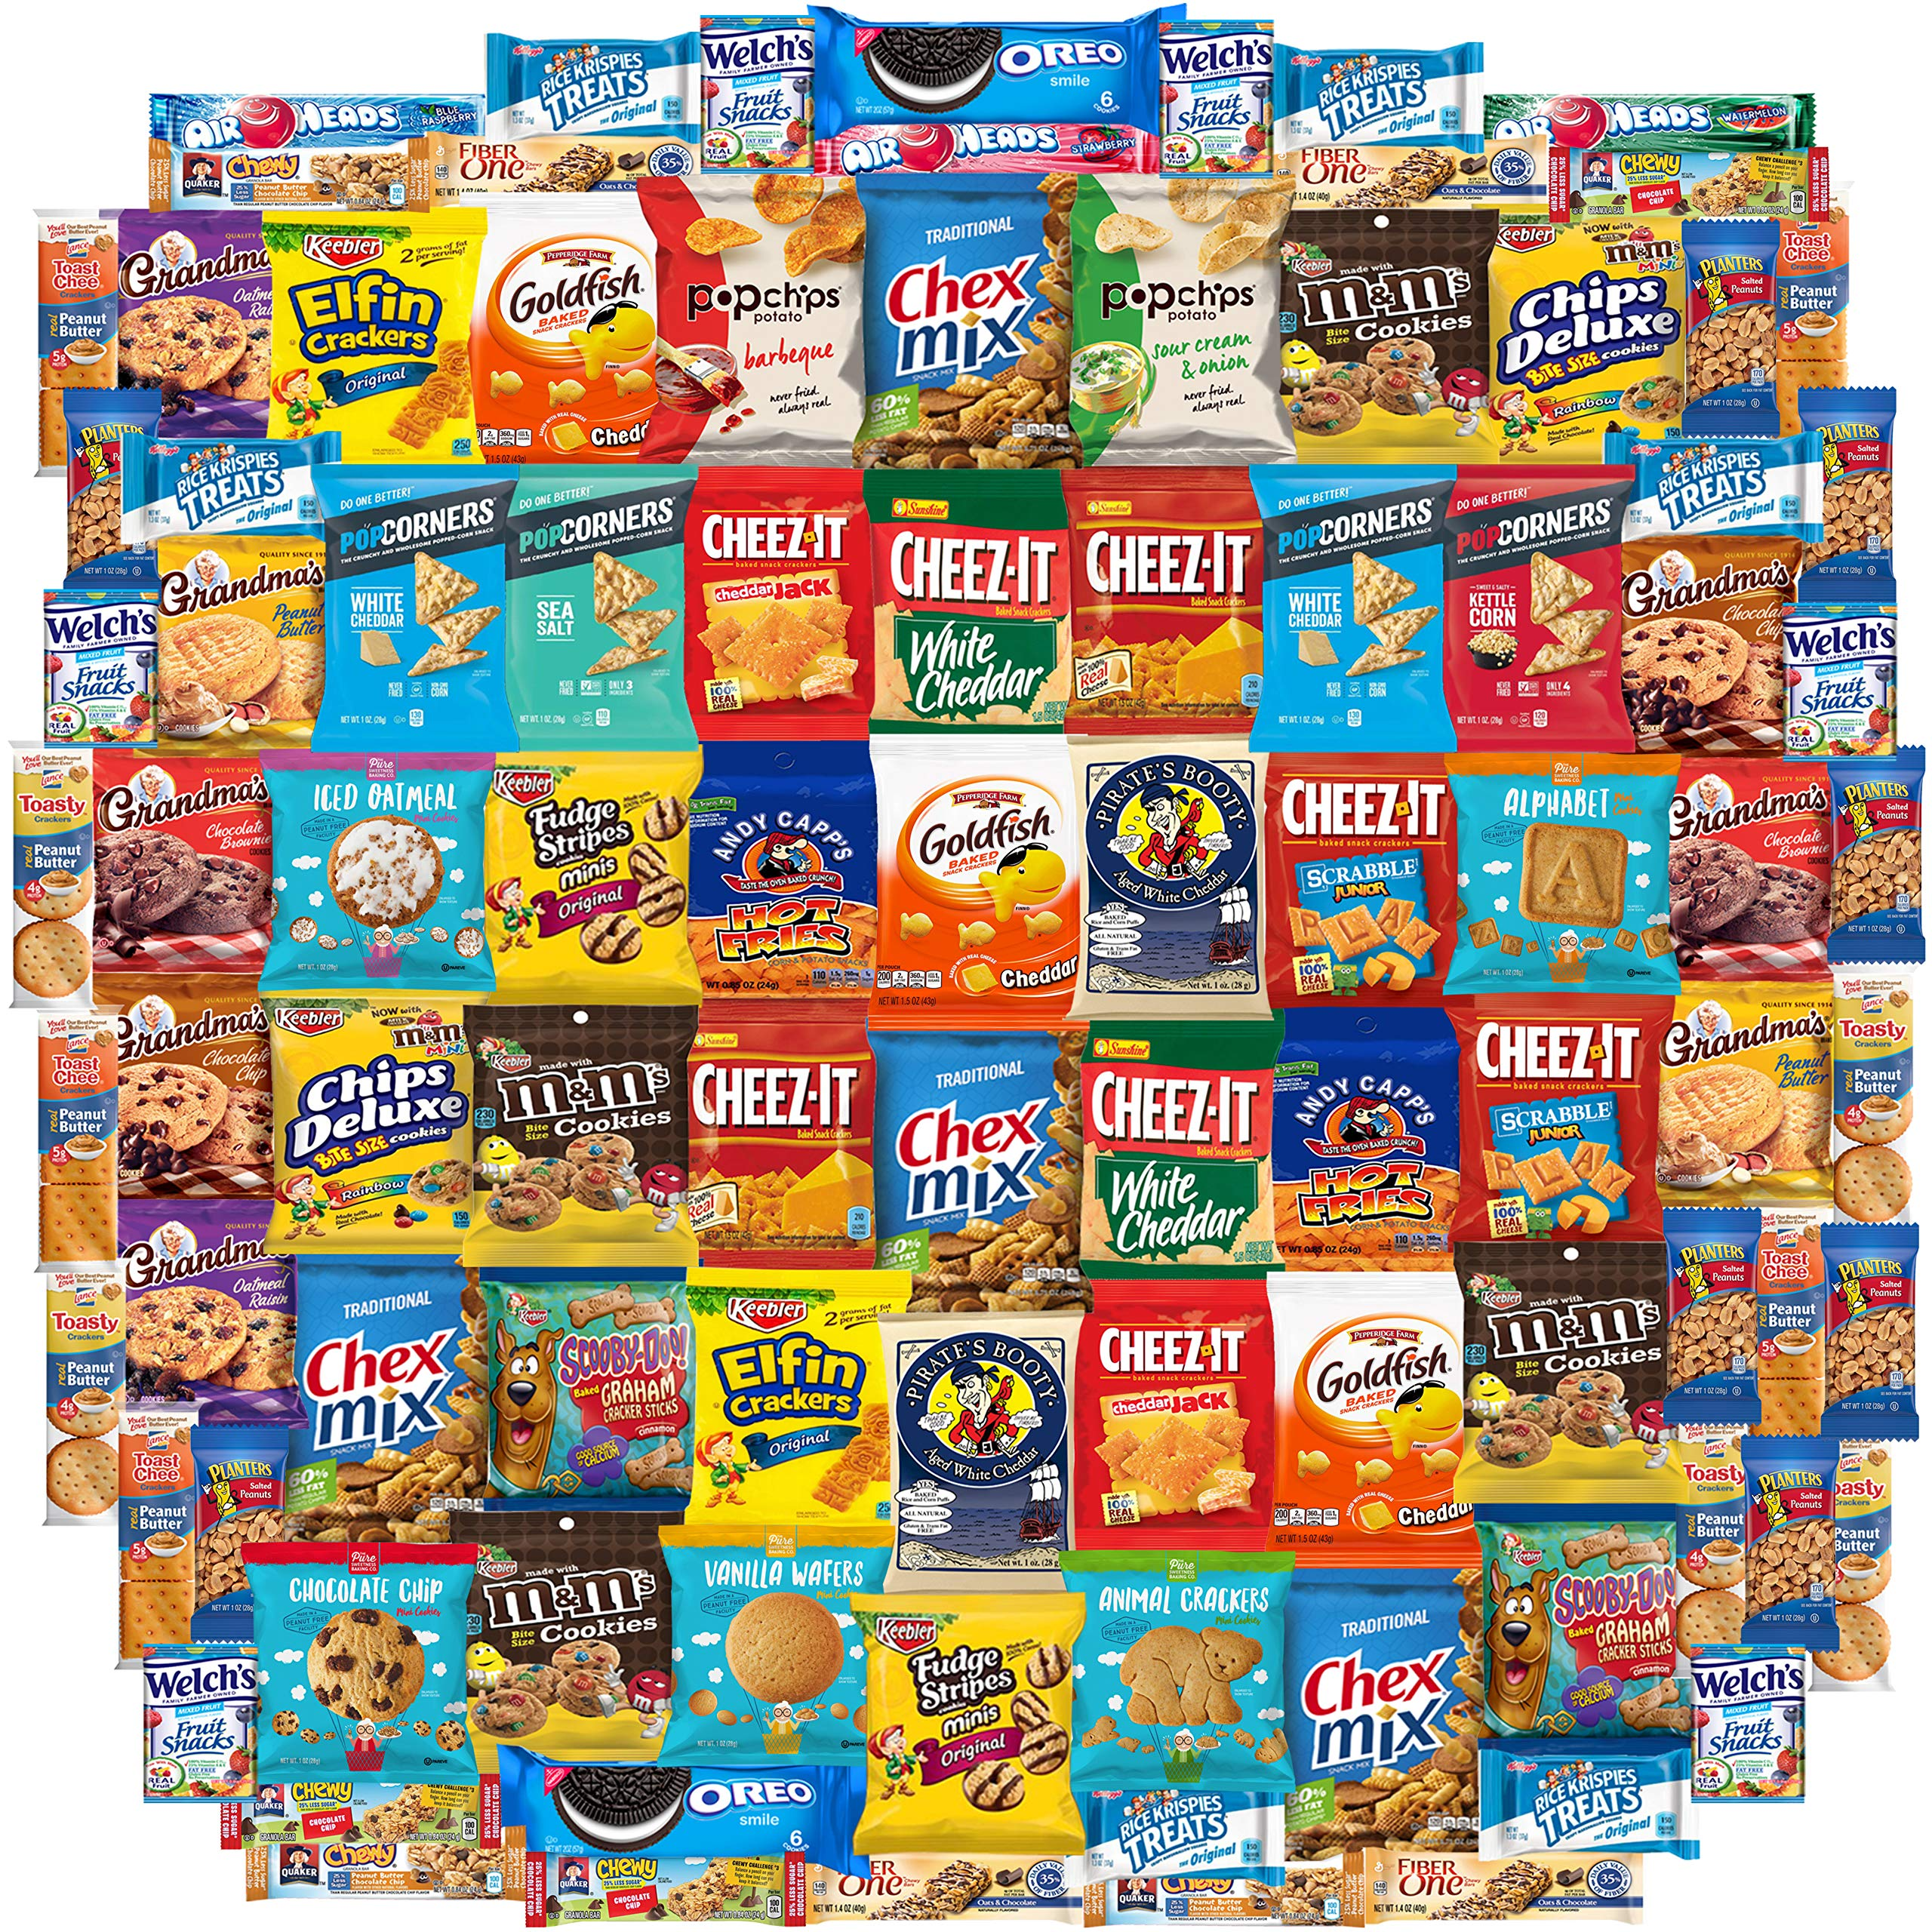 Snack Chest Snacks Care Package Gift Assortment Sampler Mixed Bars, Cookies, Chips, Candy for Office, Military, College, Meetings, Schools, Friends & Family (100 Count) by Snack Chest (Image #1)